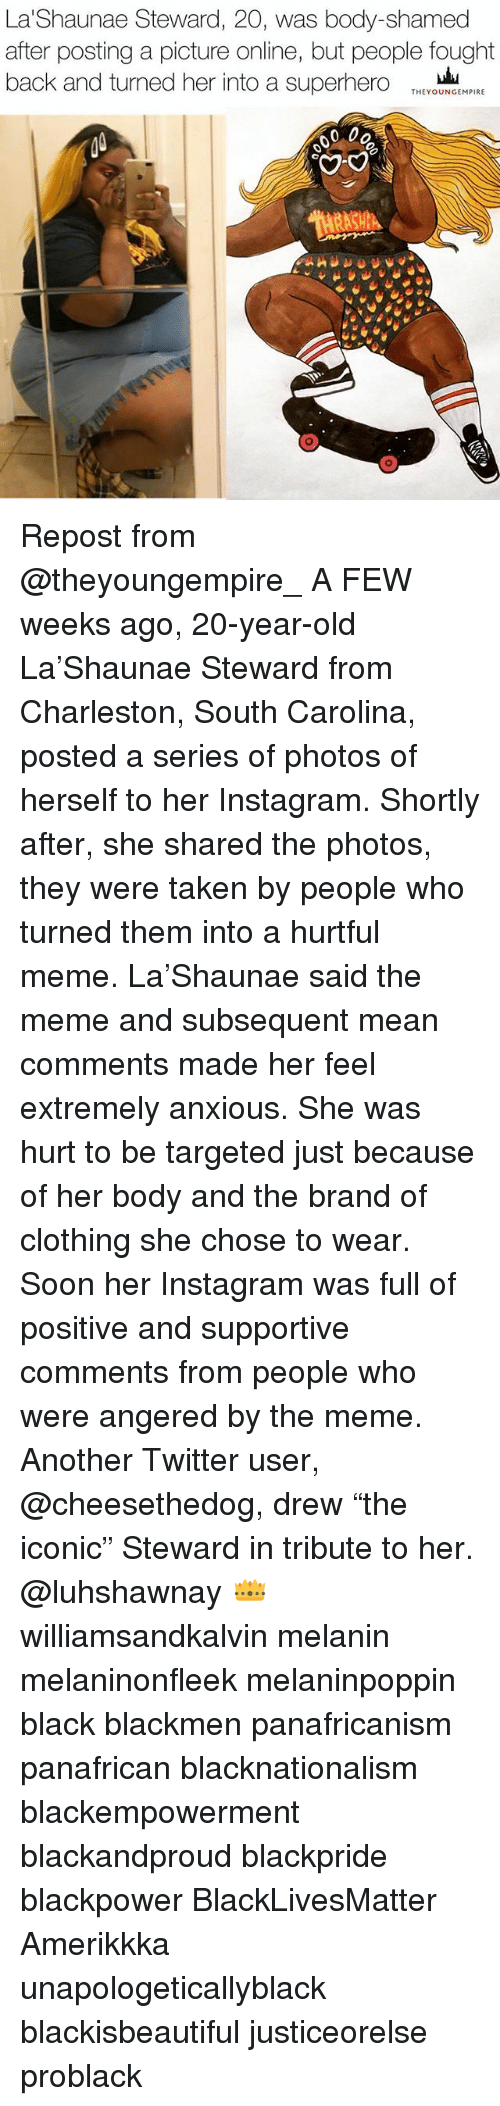 """Charleston: La Shaunae Steward, 20, was body-shamed  after posting a picture online, but people fought  back and turned her into a superhero  THEY OUNGEMPIRE  0 00 Repost from @theyoungempire_ A FEW weeks ago, 20-year-old La'Shaunae Steward from Charleston, South Carolina, posted a series of photos of herself to her Instagram. Shortly after, she shared the photos, they were taken by people who turned them into a hurtful meme. La'Shaunae said the meme and subsequent mean comments made her feel extremely anxious. She was hurt to be targeted just because of her body and the brand of clothing she chose to wear. Soon her Instagram was full of positive and supportive comments from people who were angered by the meme. Another Twitter user, @cheesethedog, drew """"the iconic"""" Steward in tribute to her. @luhshawnay 👑 williamsandkalvin melanin melaninonfleek melaninpoppin black blackmen panafricanism panafrican blacknationalism blackempowerment blackandproud blackpride blackpower BlackLivesMatter Amerikkka unapologeticallyblack blackisbeautiful justiceorelse problack"""